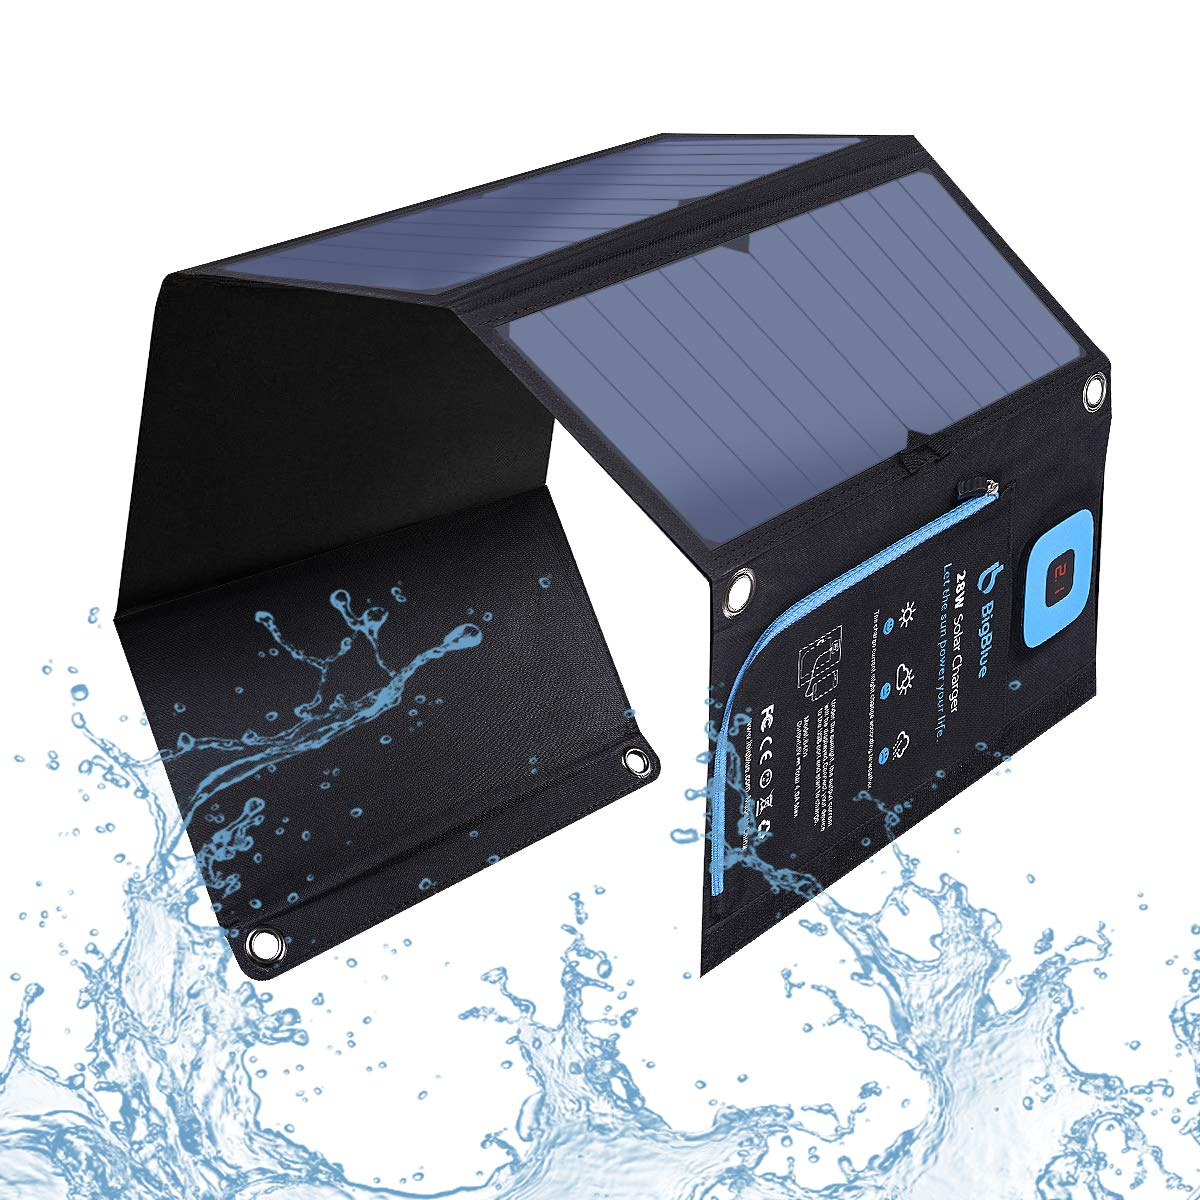 BigBlue 5V 28W Solar Charger with Digital Ammeter, Waterproof Foldable Solar Panels with Dual USB Ports Compatible with iPhone Xs/XS Max/XR/X/8/7S, ...